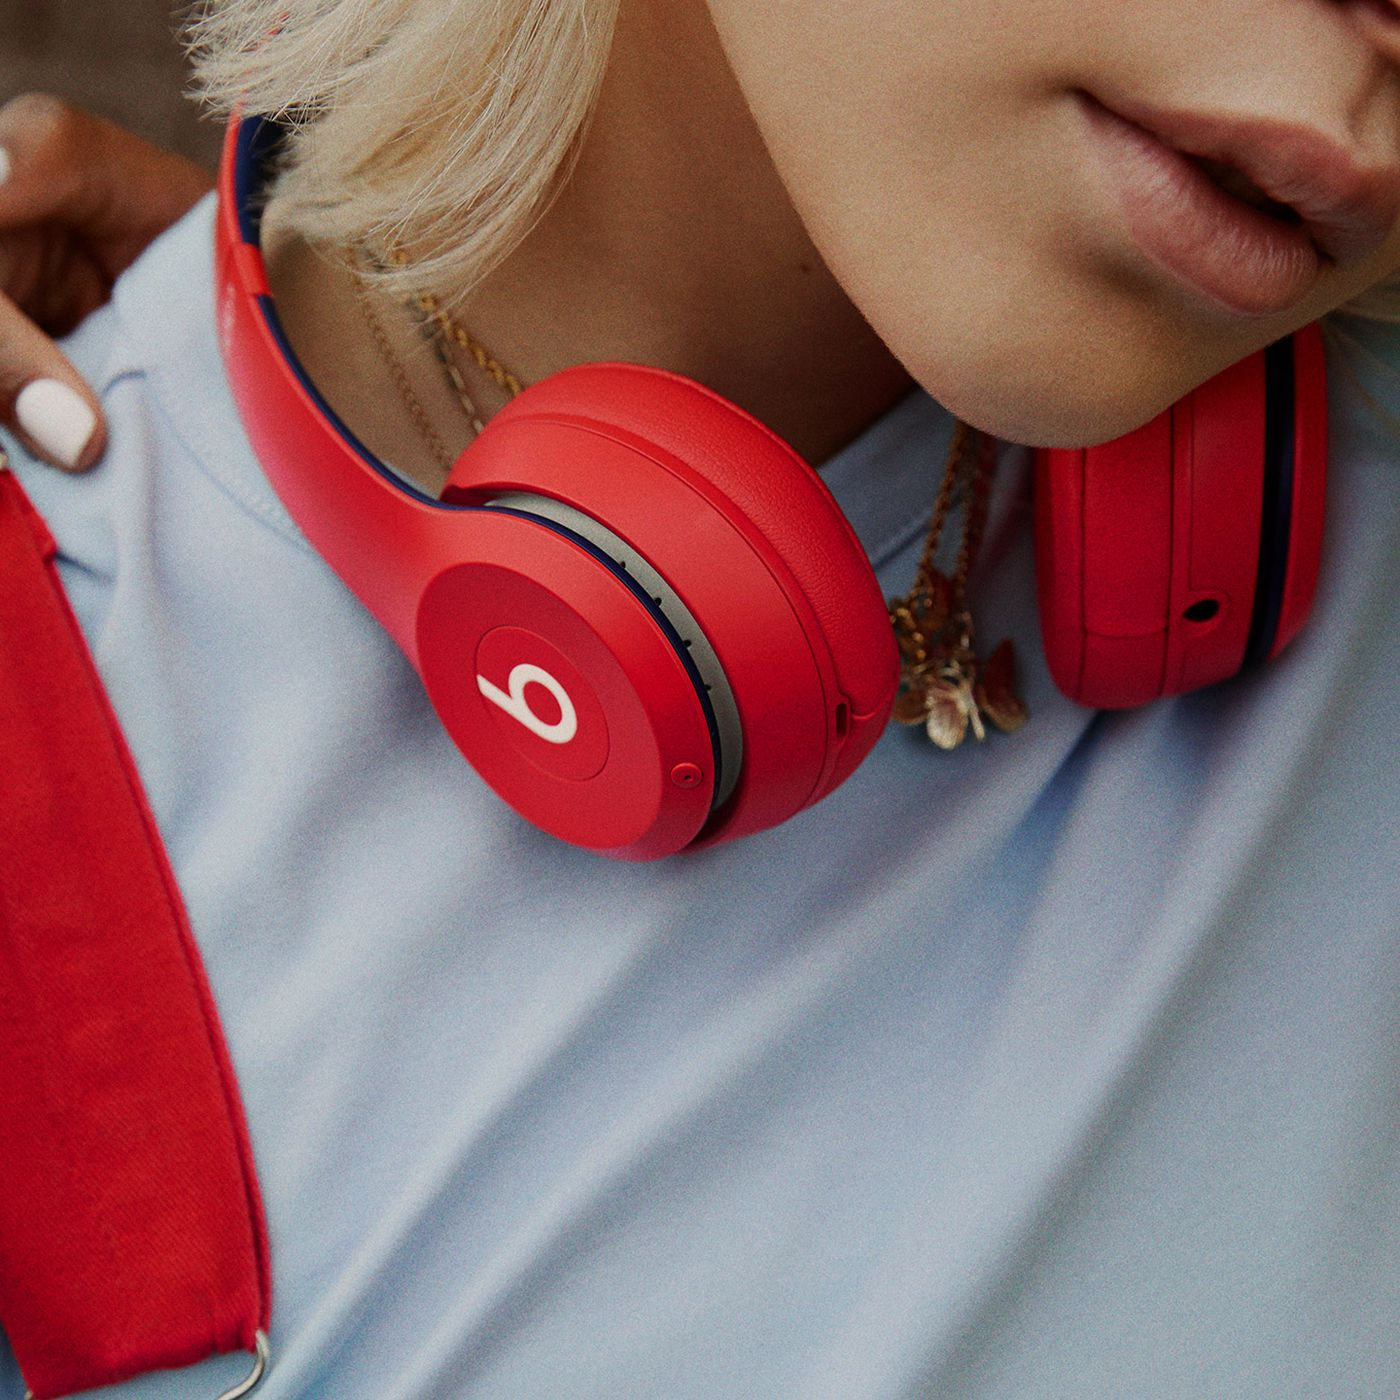 Apple Refreshes Beats Solo3 Colors Leaves Internals Unchanged The Verge